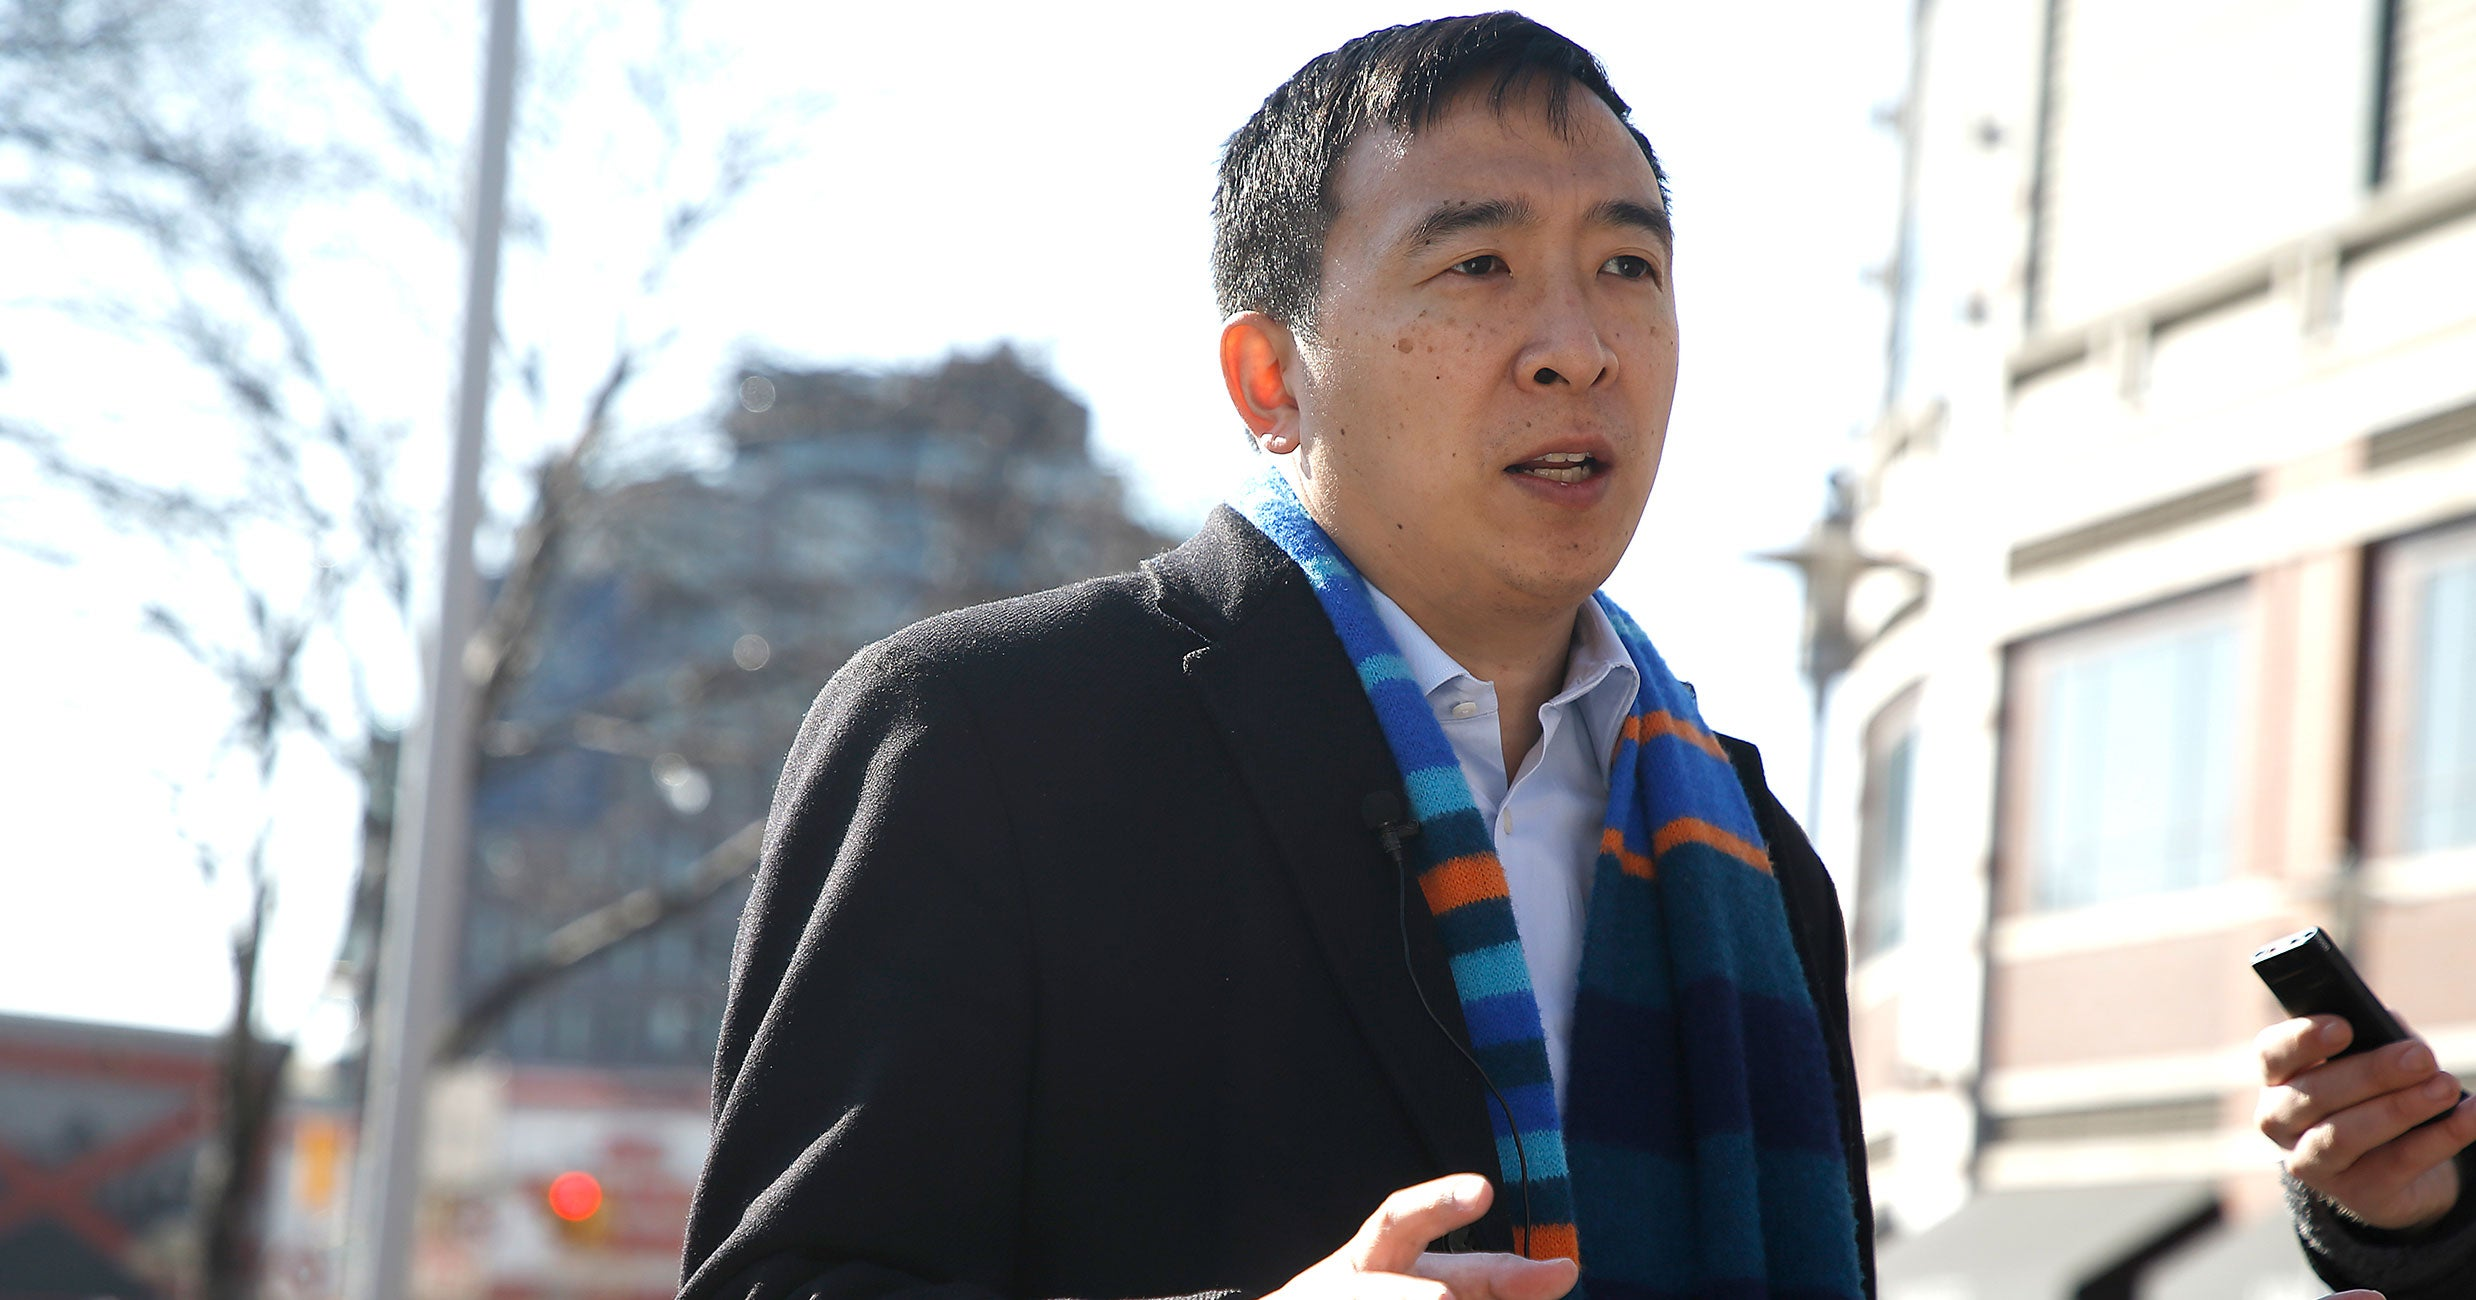 Why Everyone Is Talking About Andrew Yang's Israel Tweet